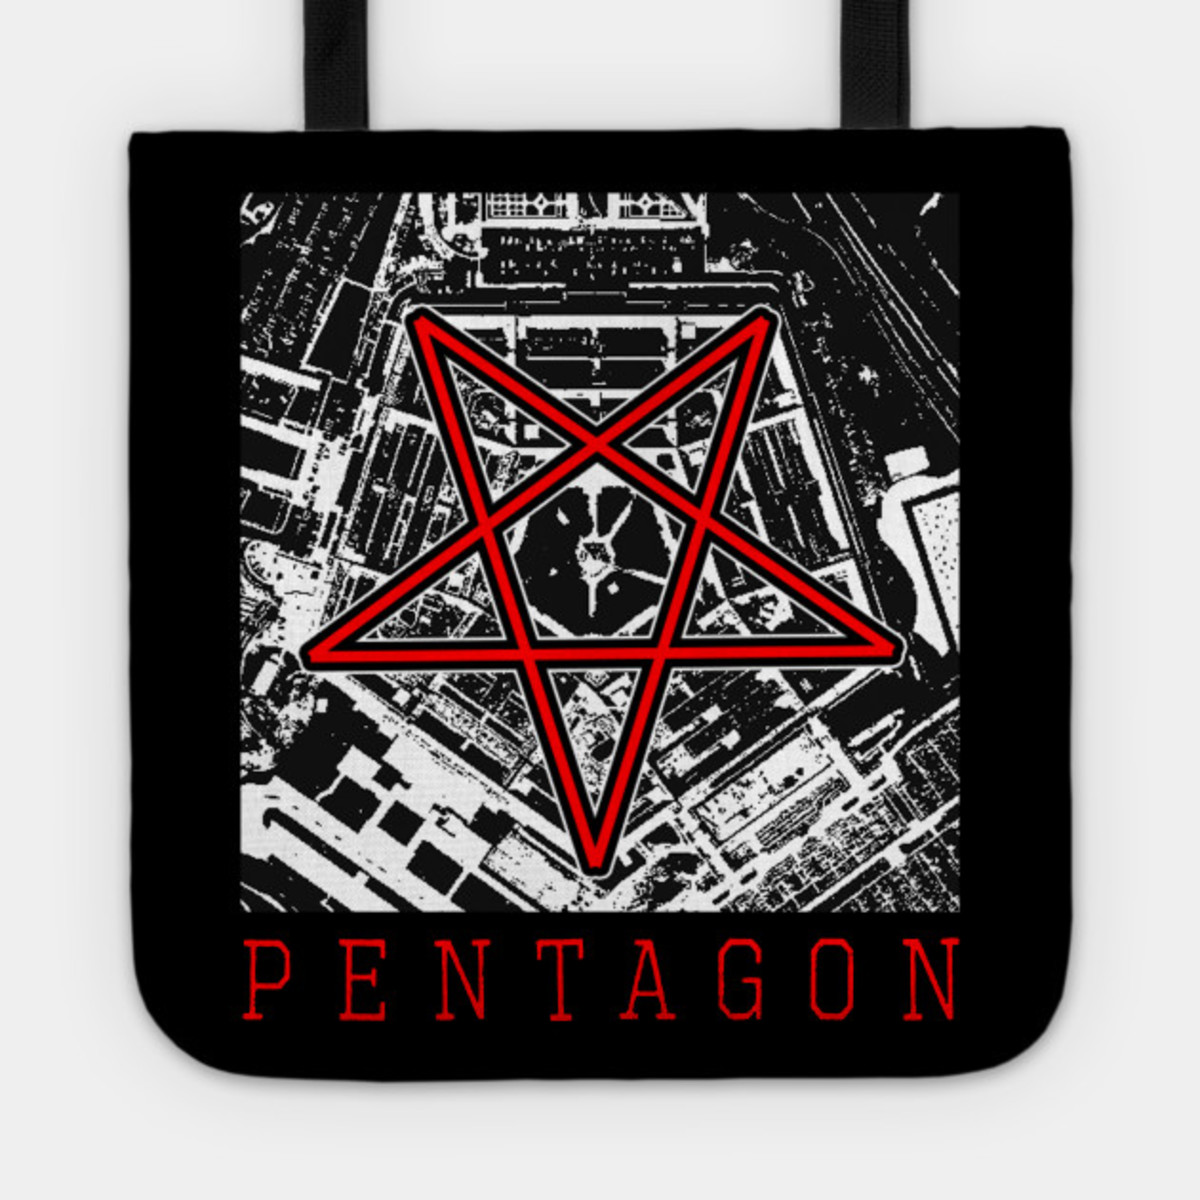 The Pentagram is a Luciferian devil worshipping concept of PAGANISM.